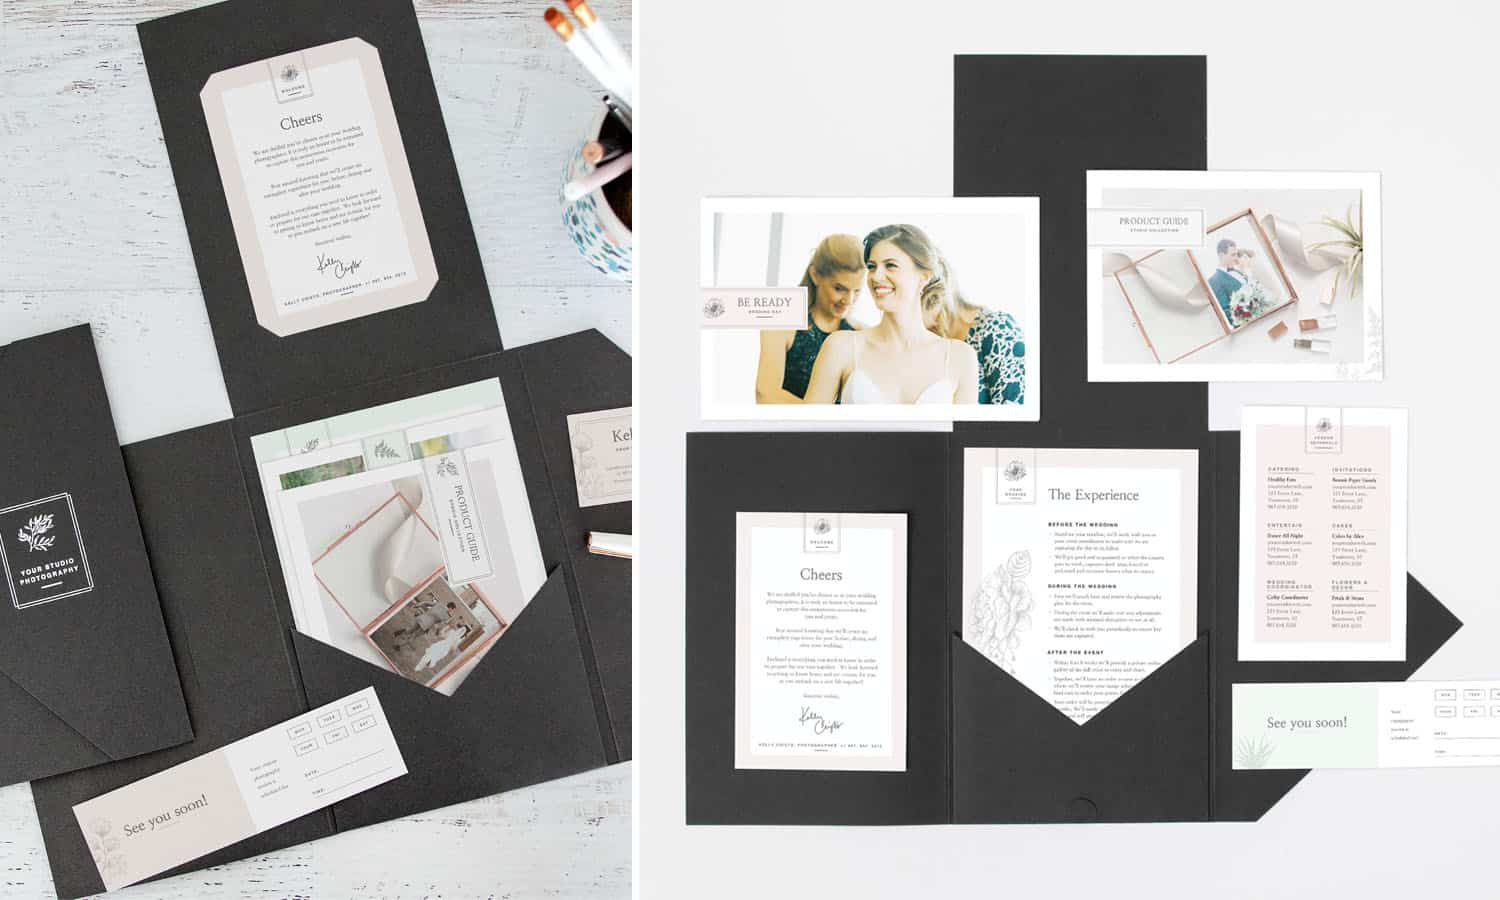 The Client Welcome Packet is one of Design Aglow's top-selling photography marketing templates.